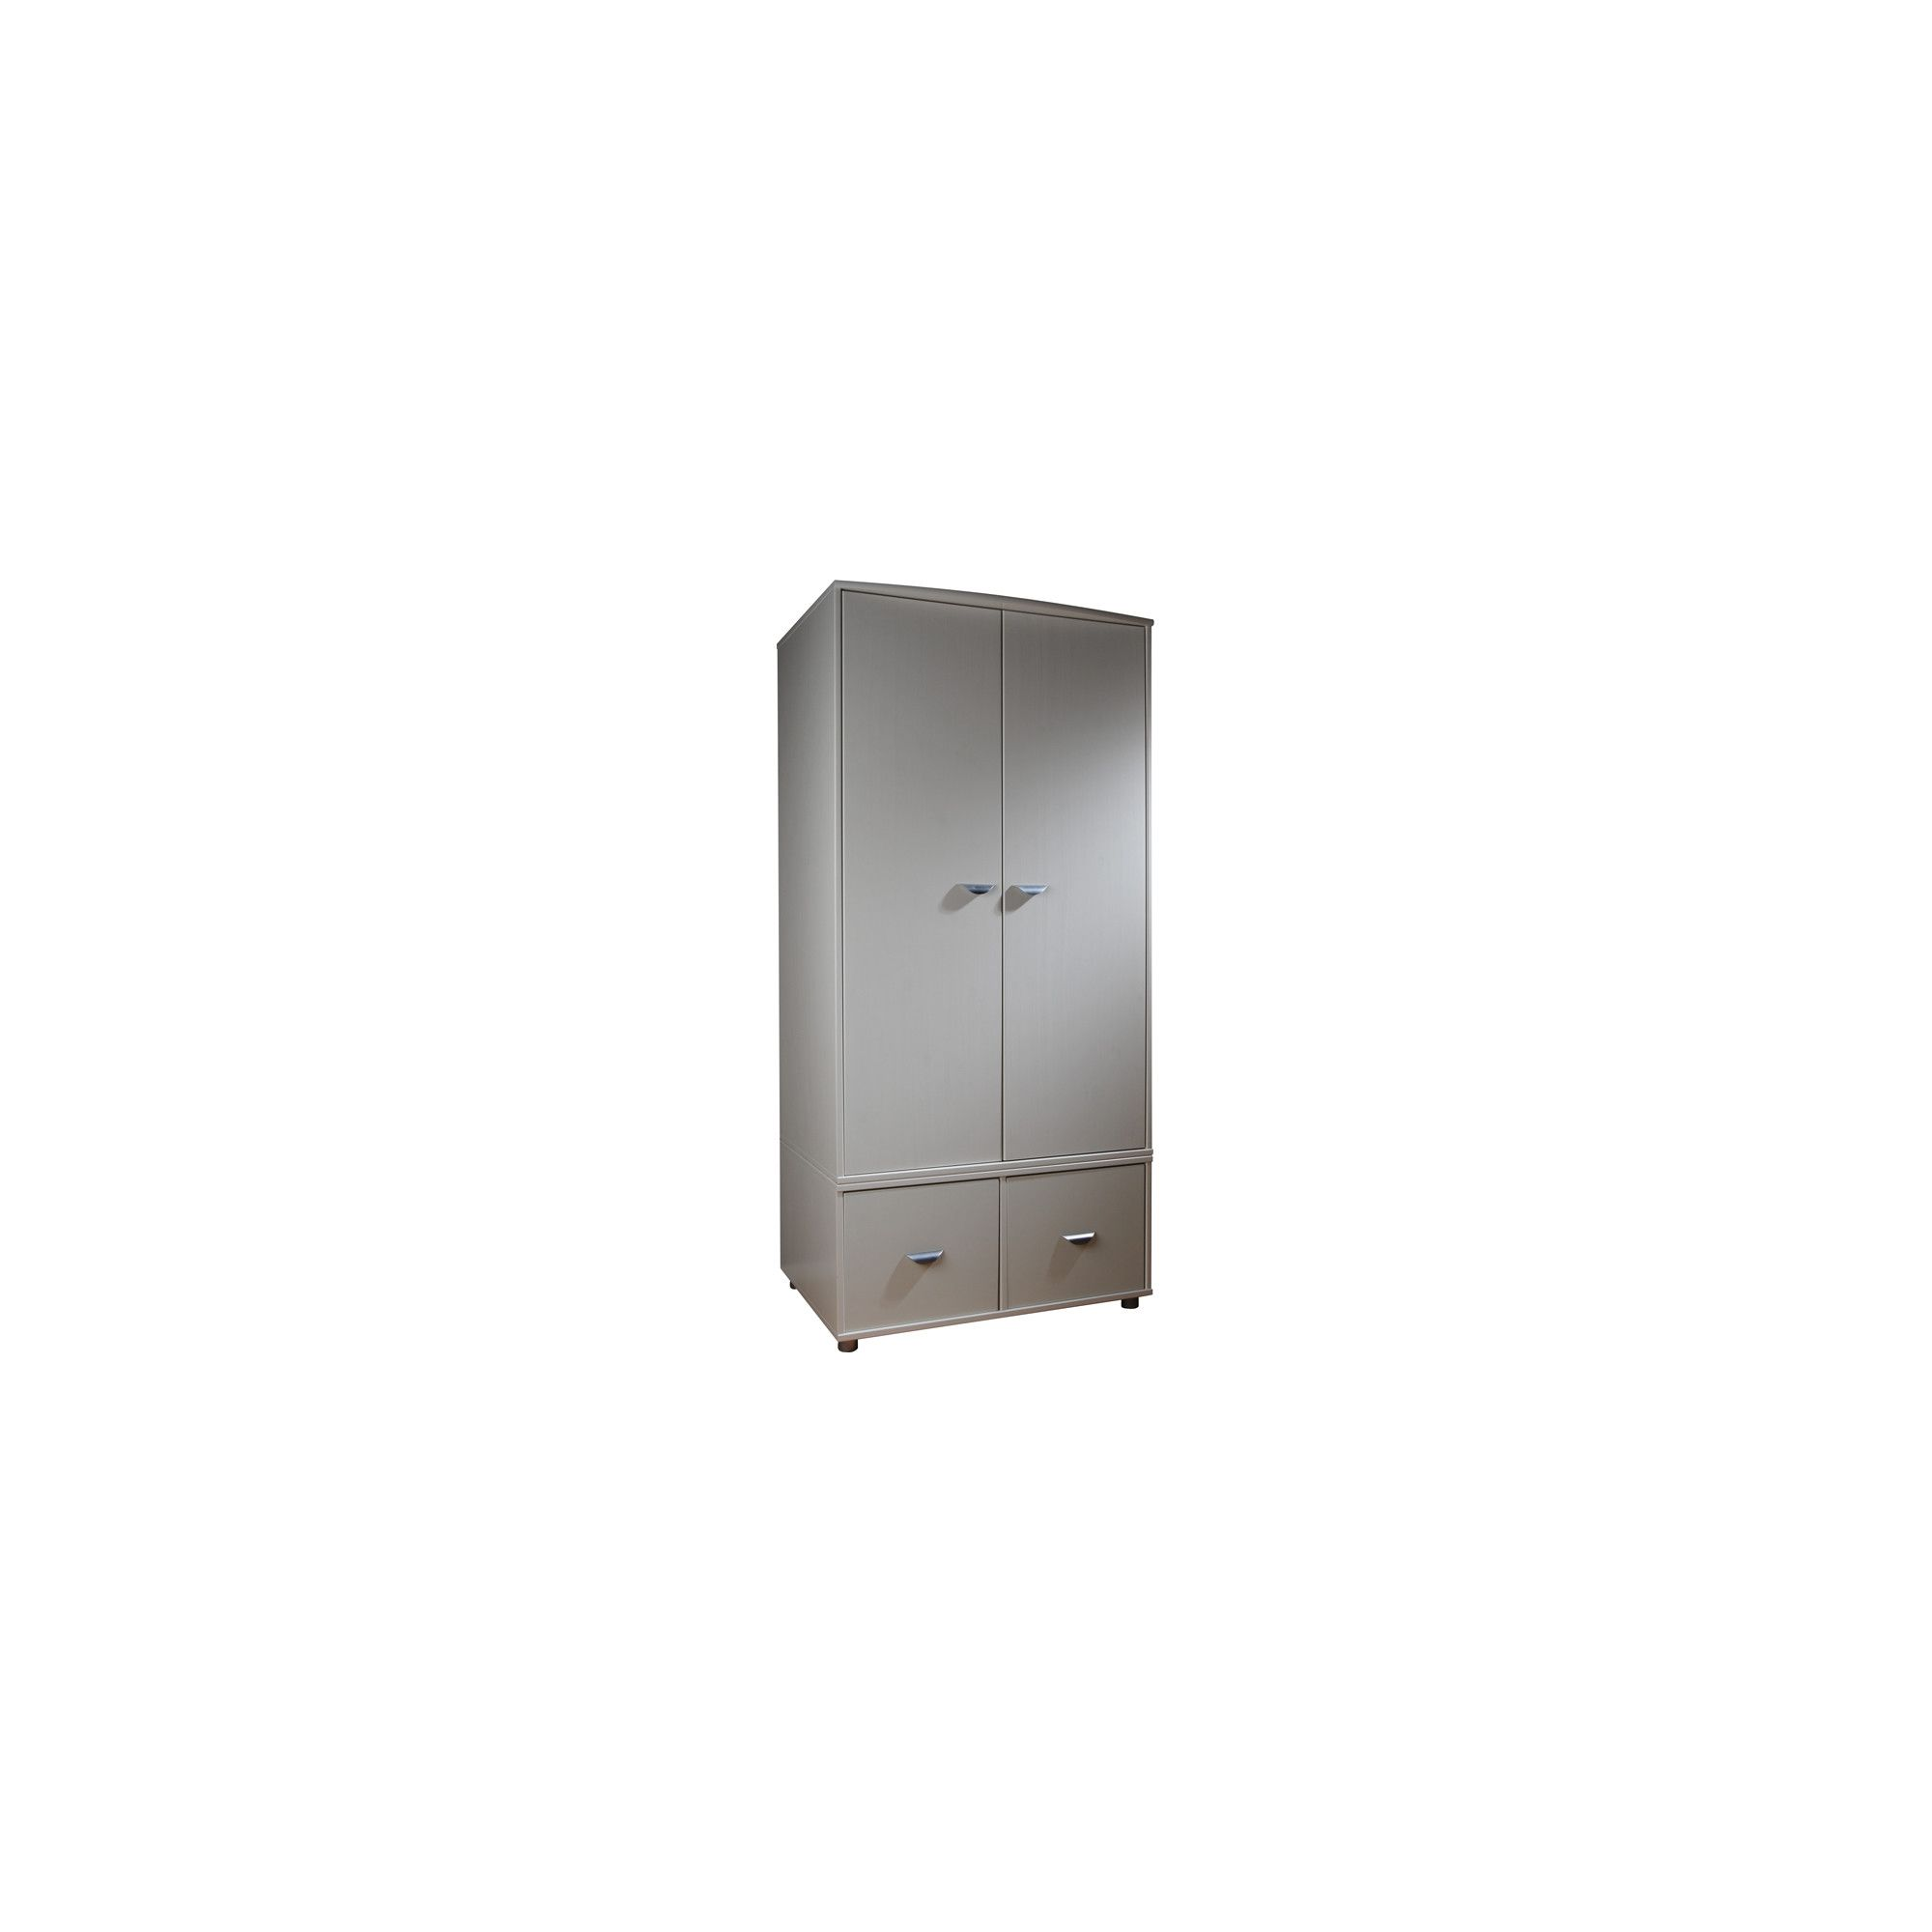 Stompa 2 Door 2 Drawer Wardrobe - Lilac - White at Tescos Direct